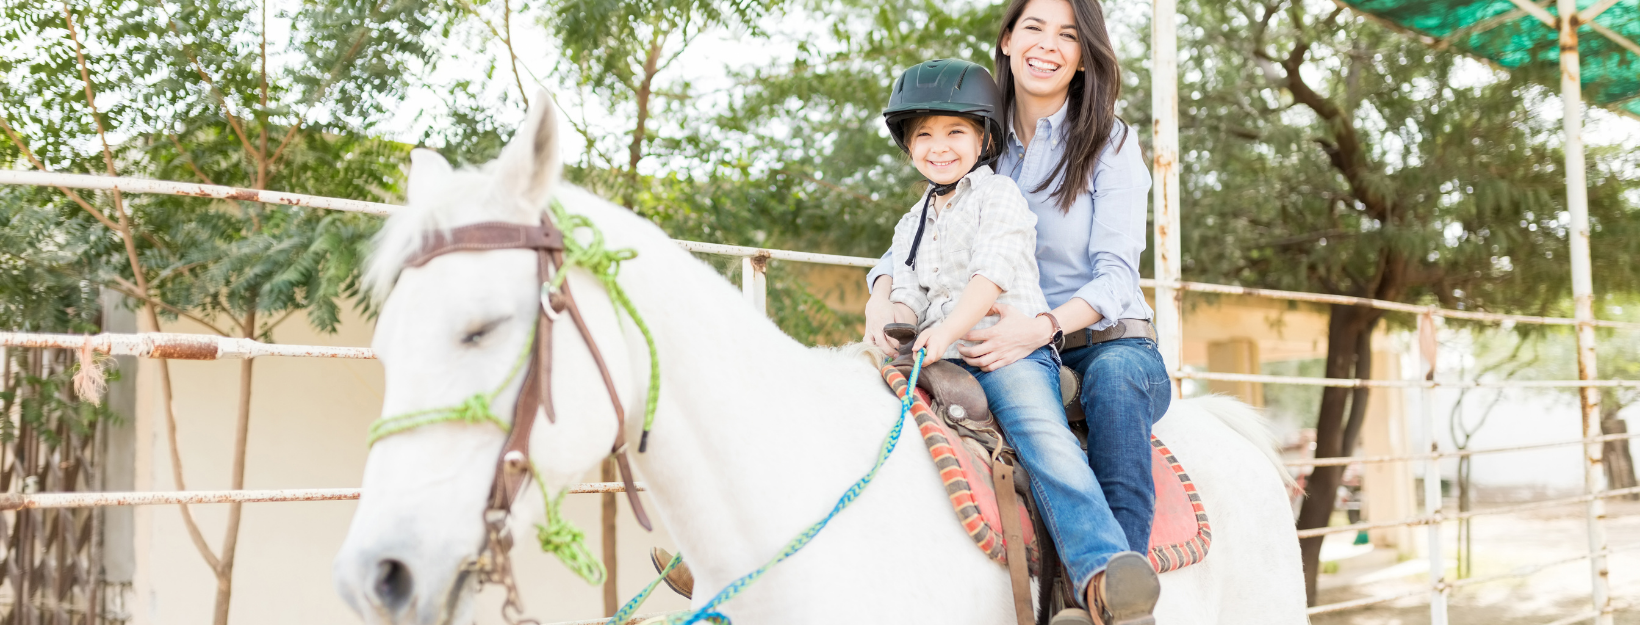 mother nd child smiling on a horse